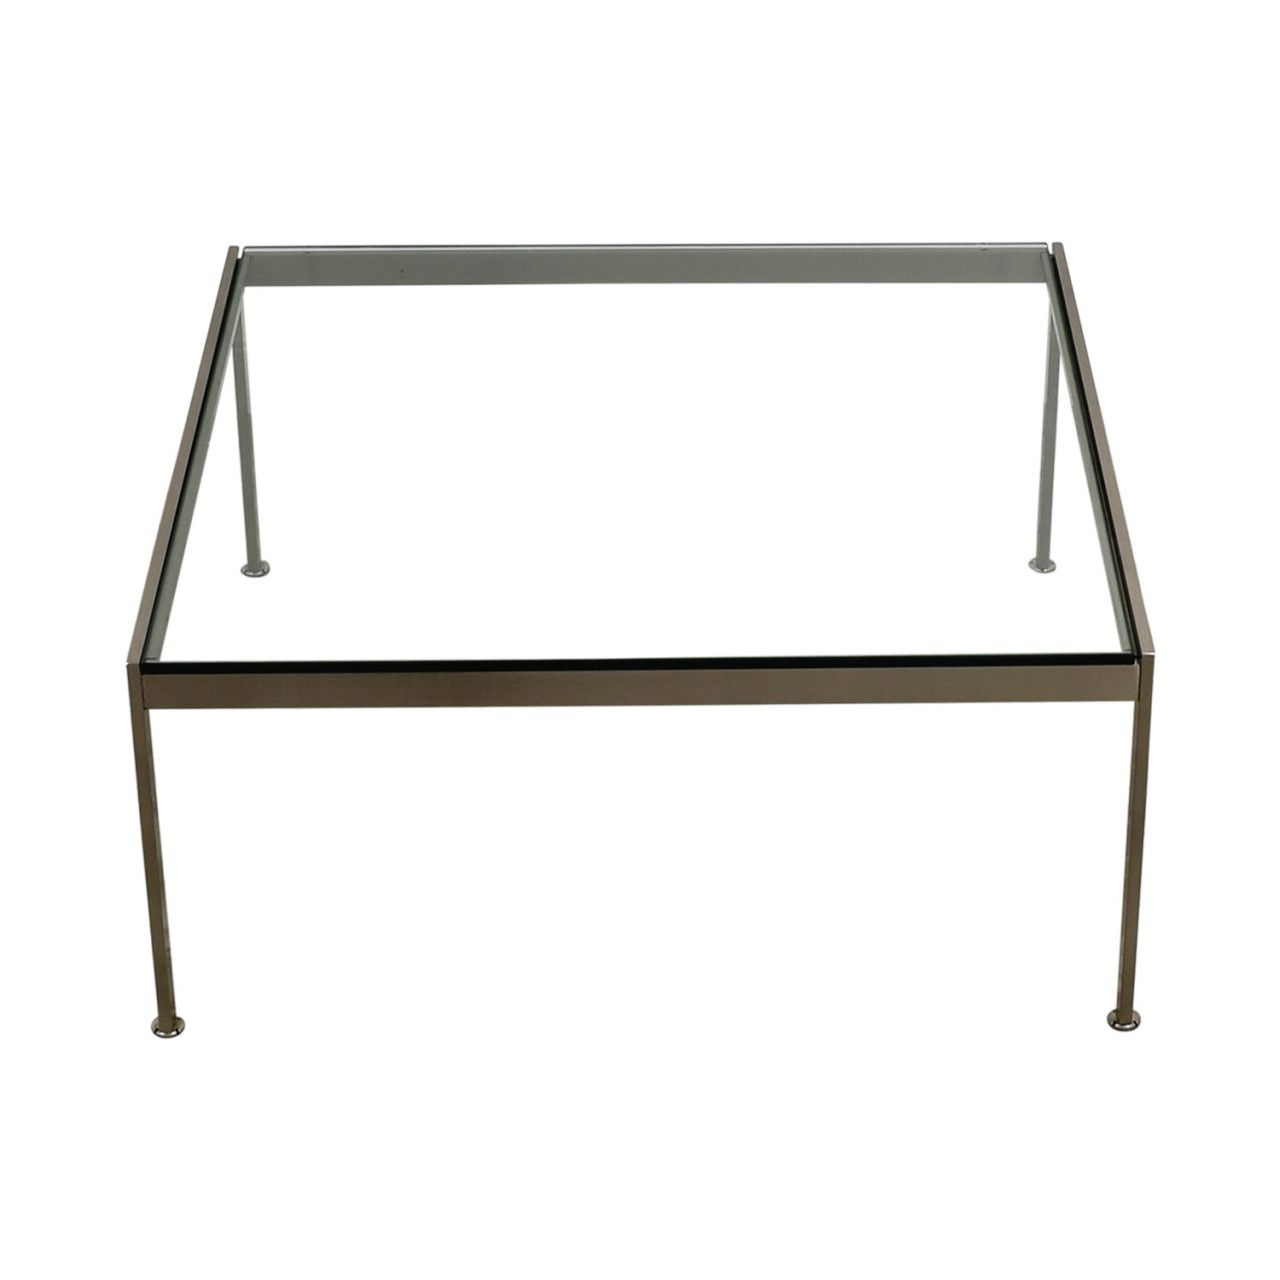 55 elegant crate and barrel glass coffee table 2018